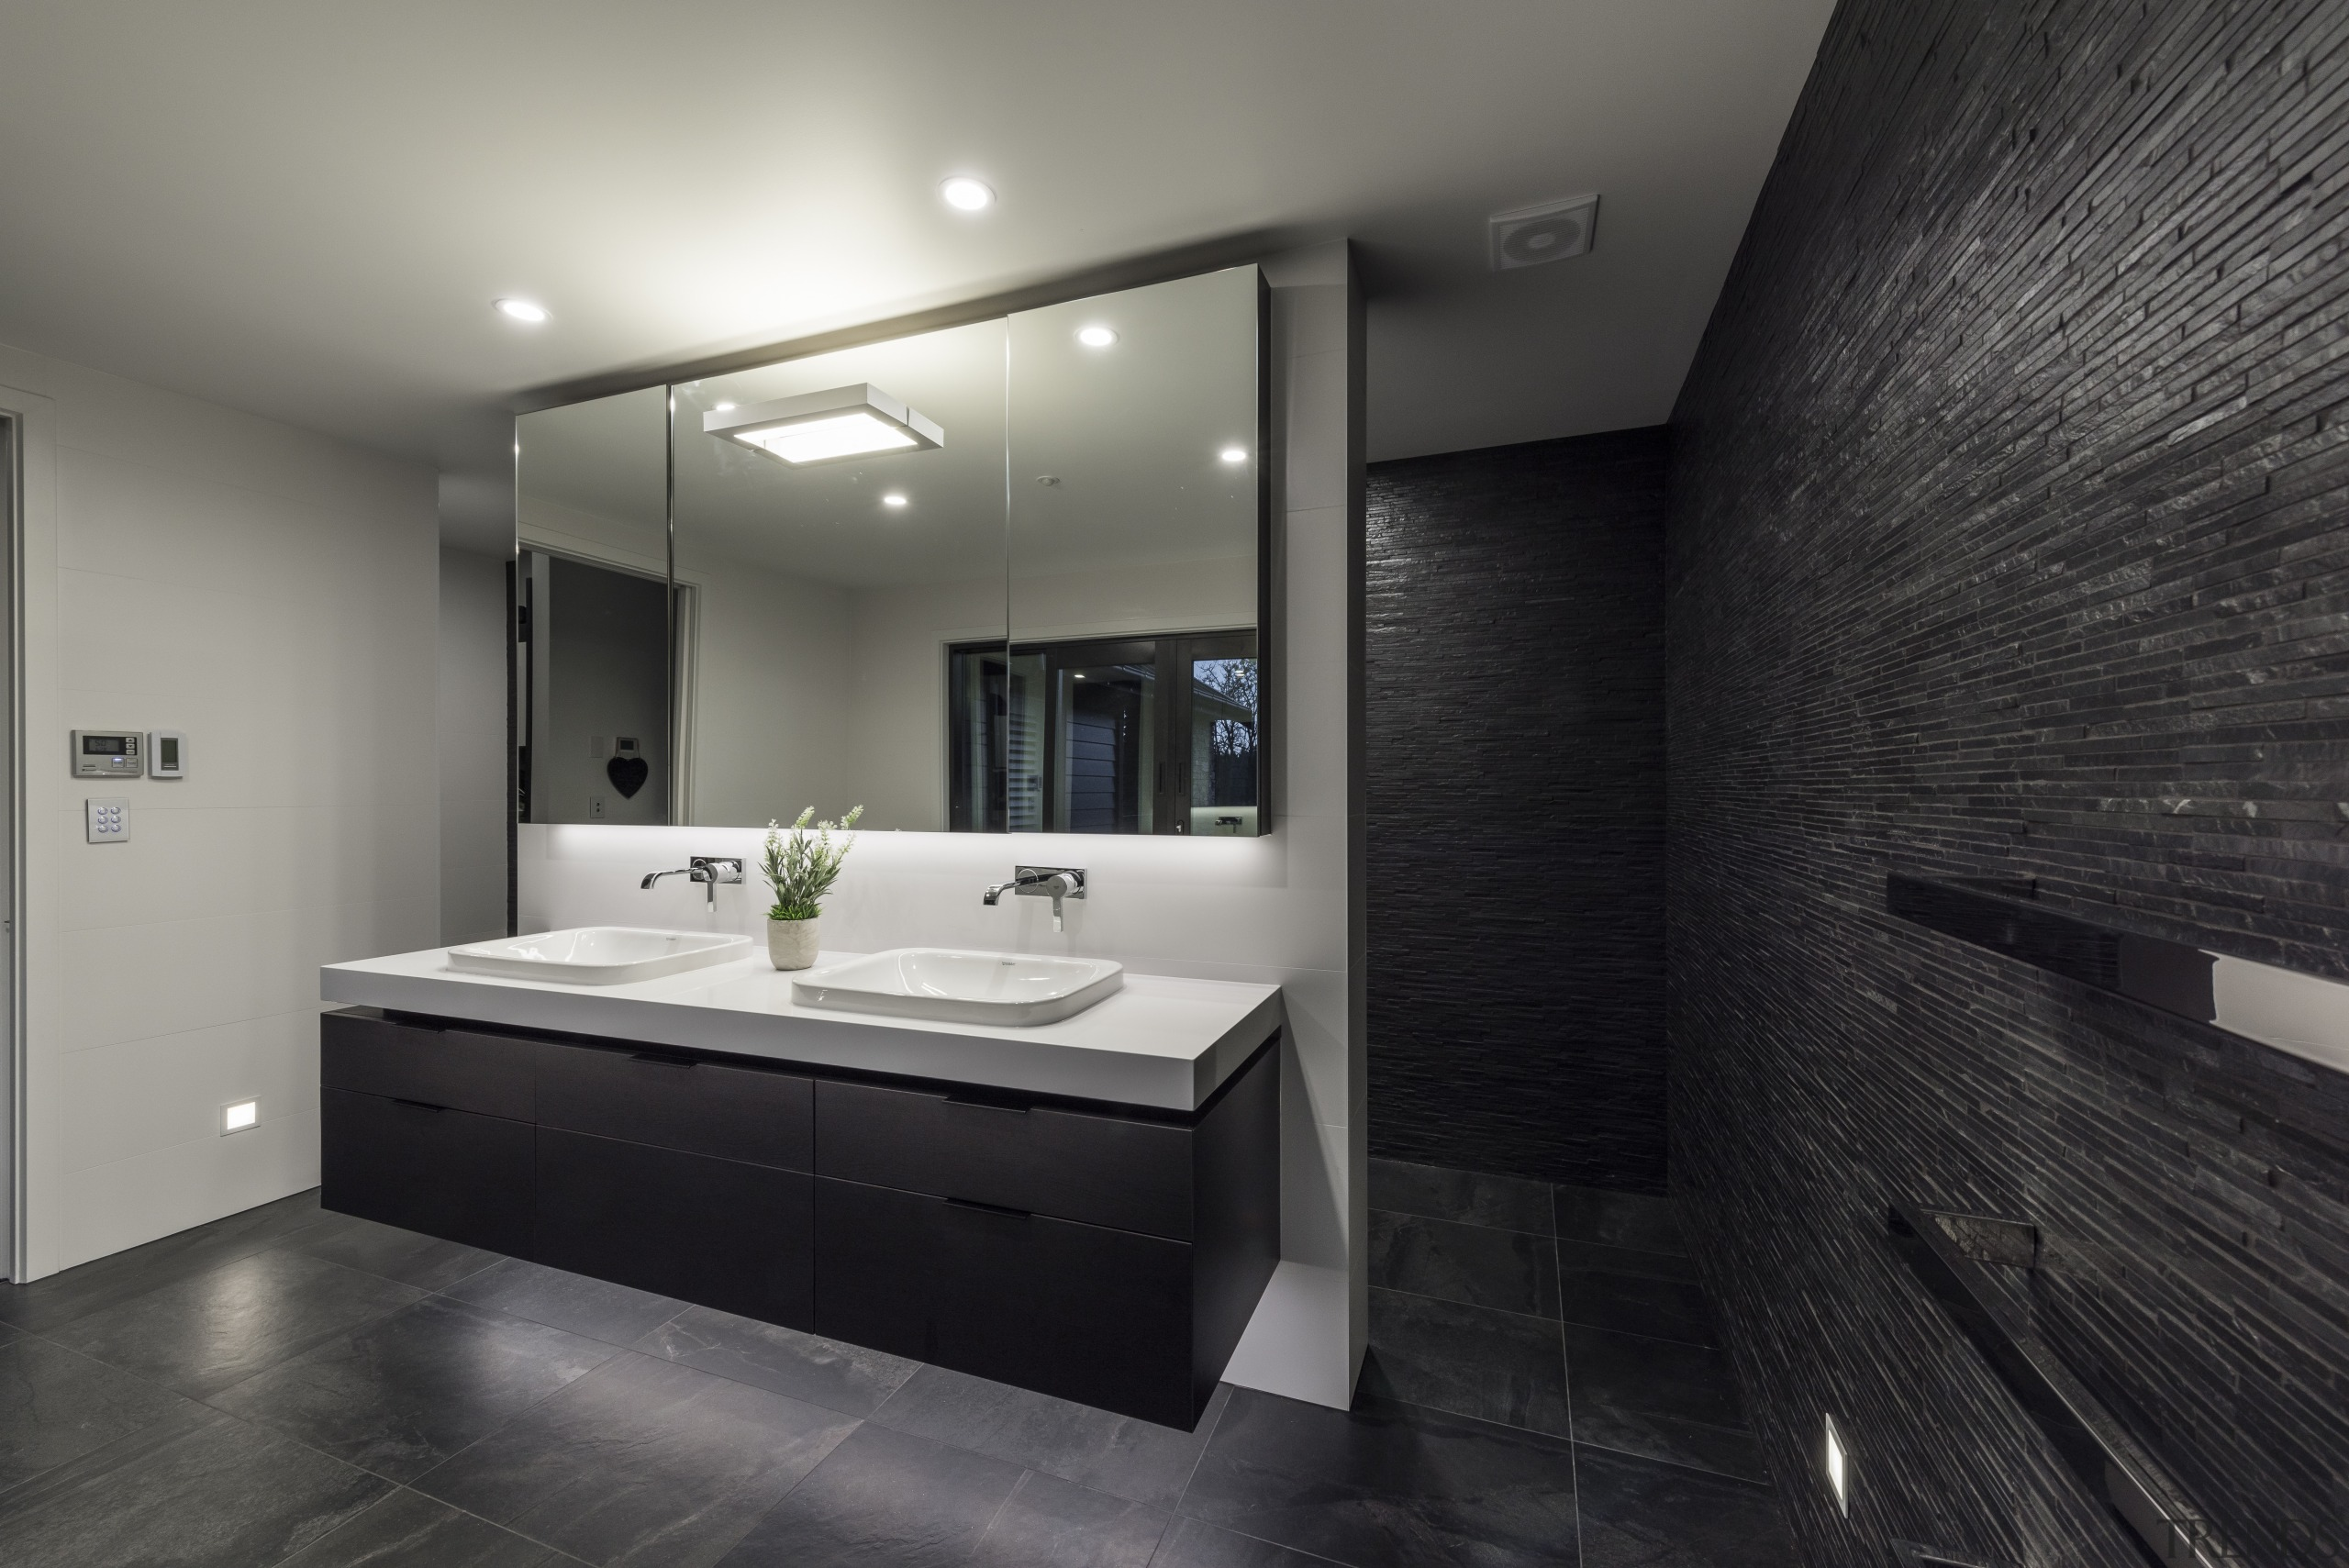 In this bathroom, floating the double vanity optimised architecture, bathroom, ceiling, floor, interior design, real estate, room, black, gray